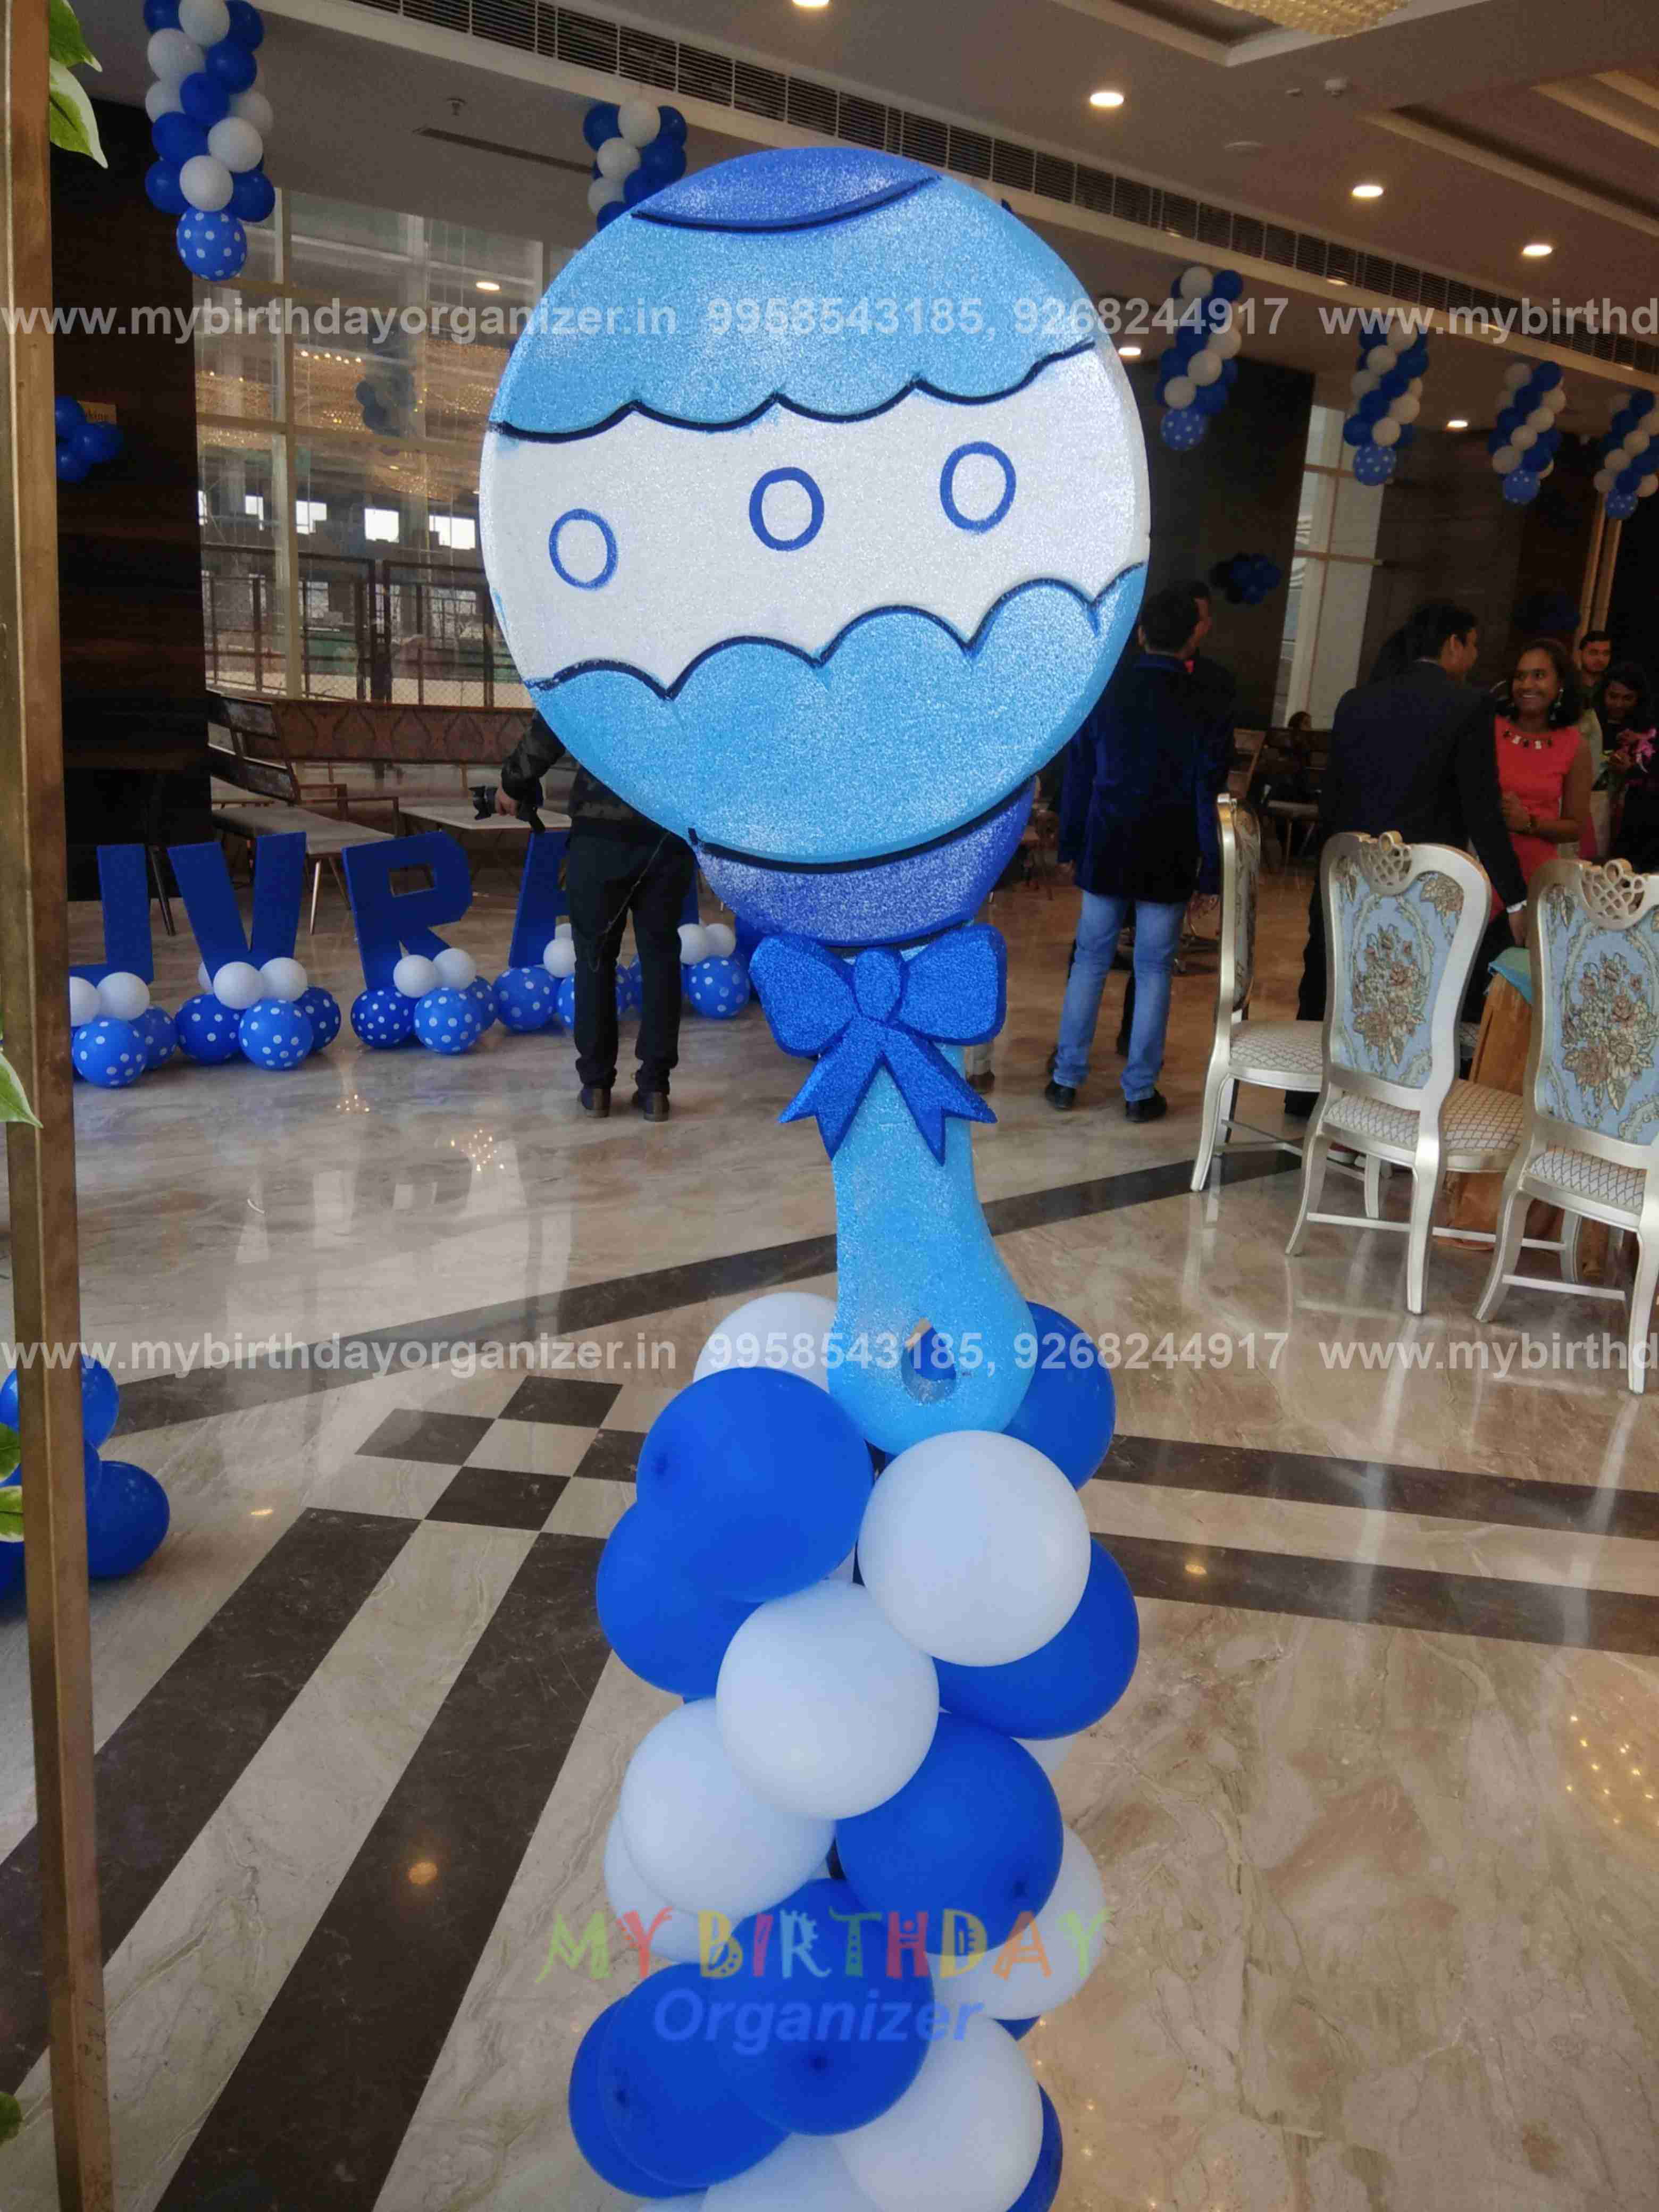 party balloon decoration noida delhi ncr, best party balloon decoration noida delhi ncr gurgaon, birthday party balloon decoration service at home in noida delhi ncr gurgaon